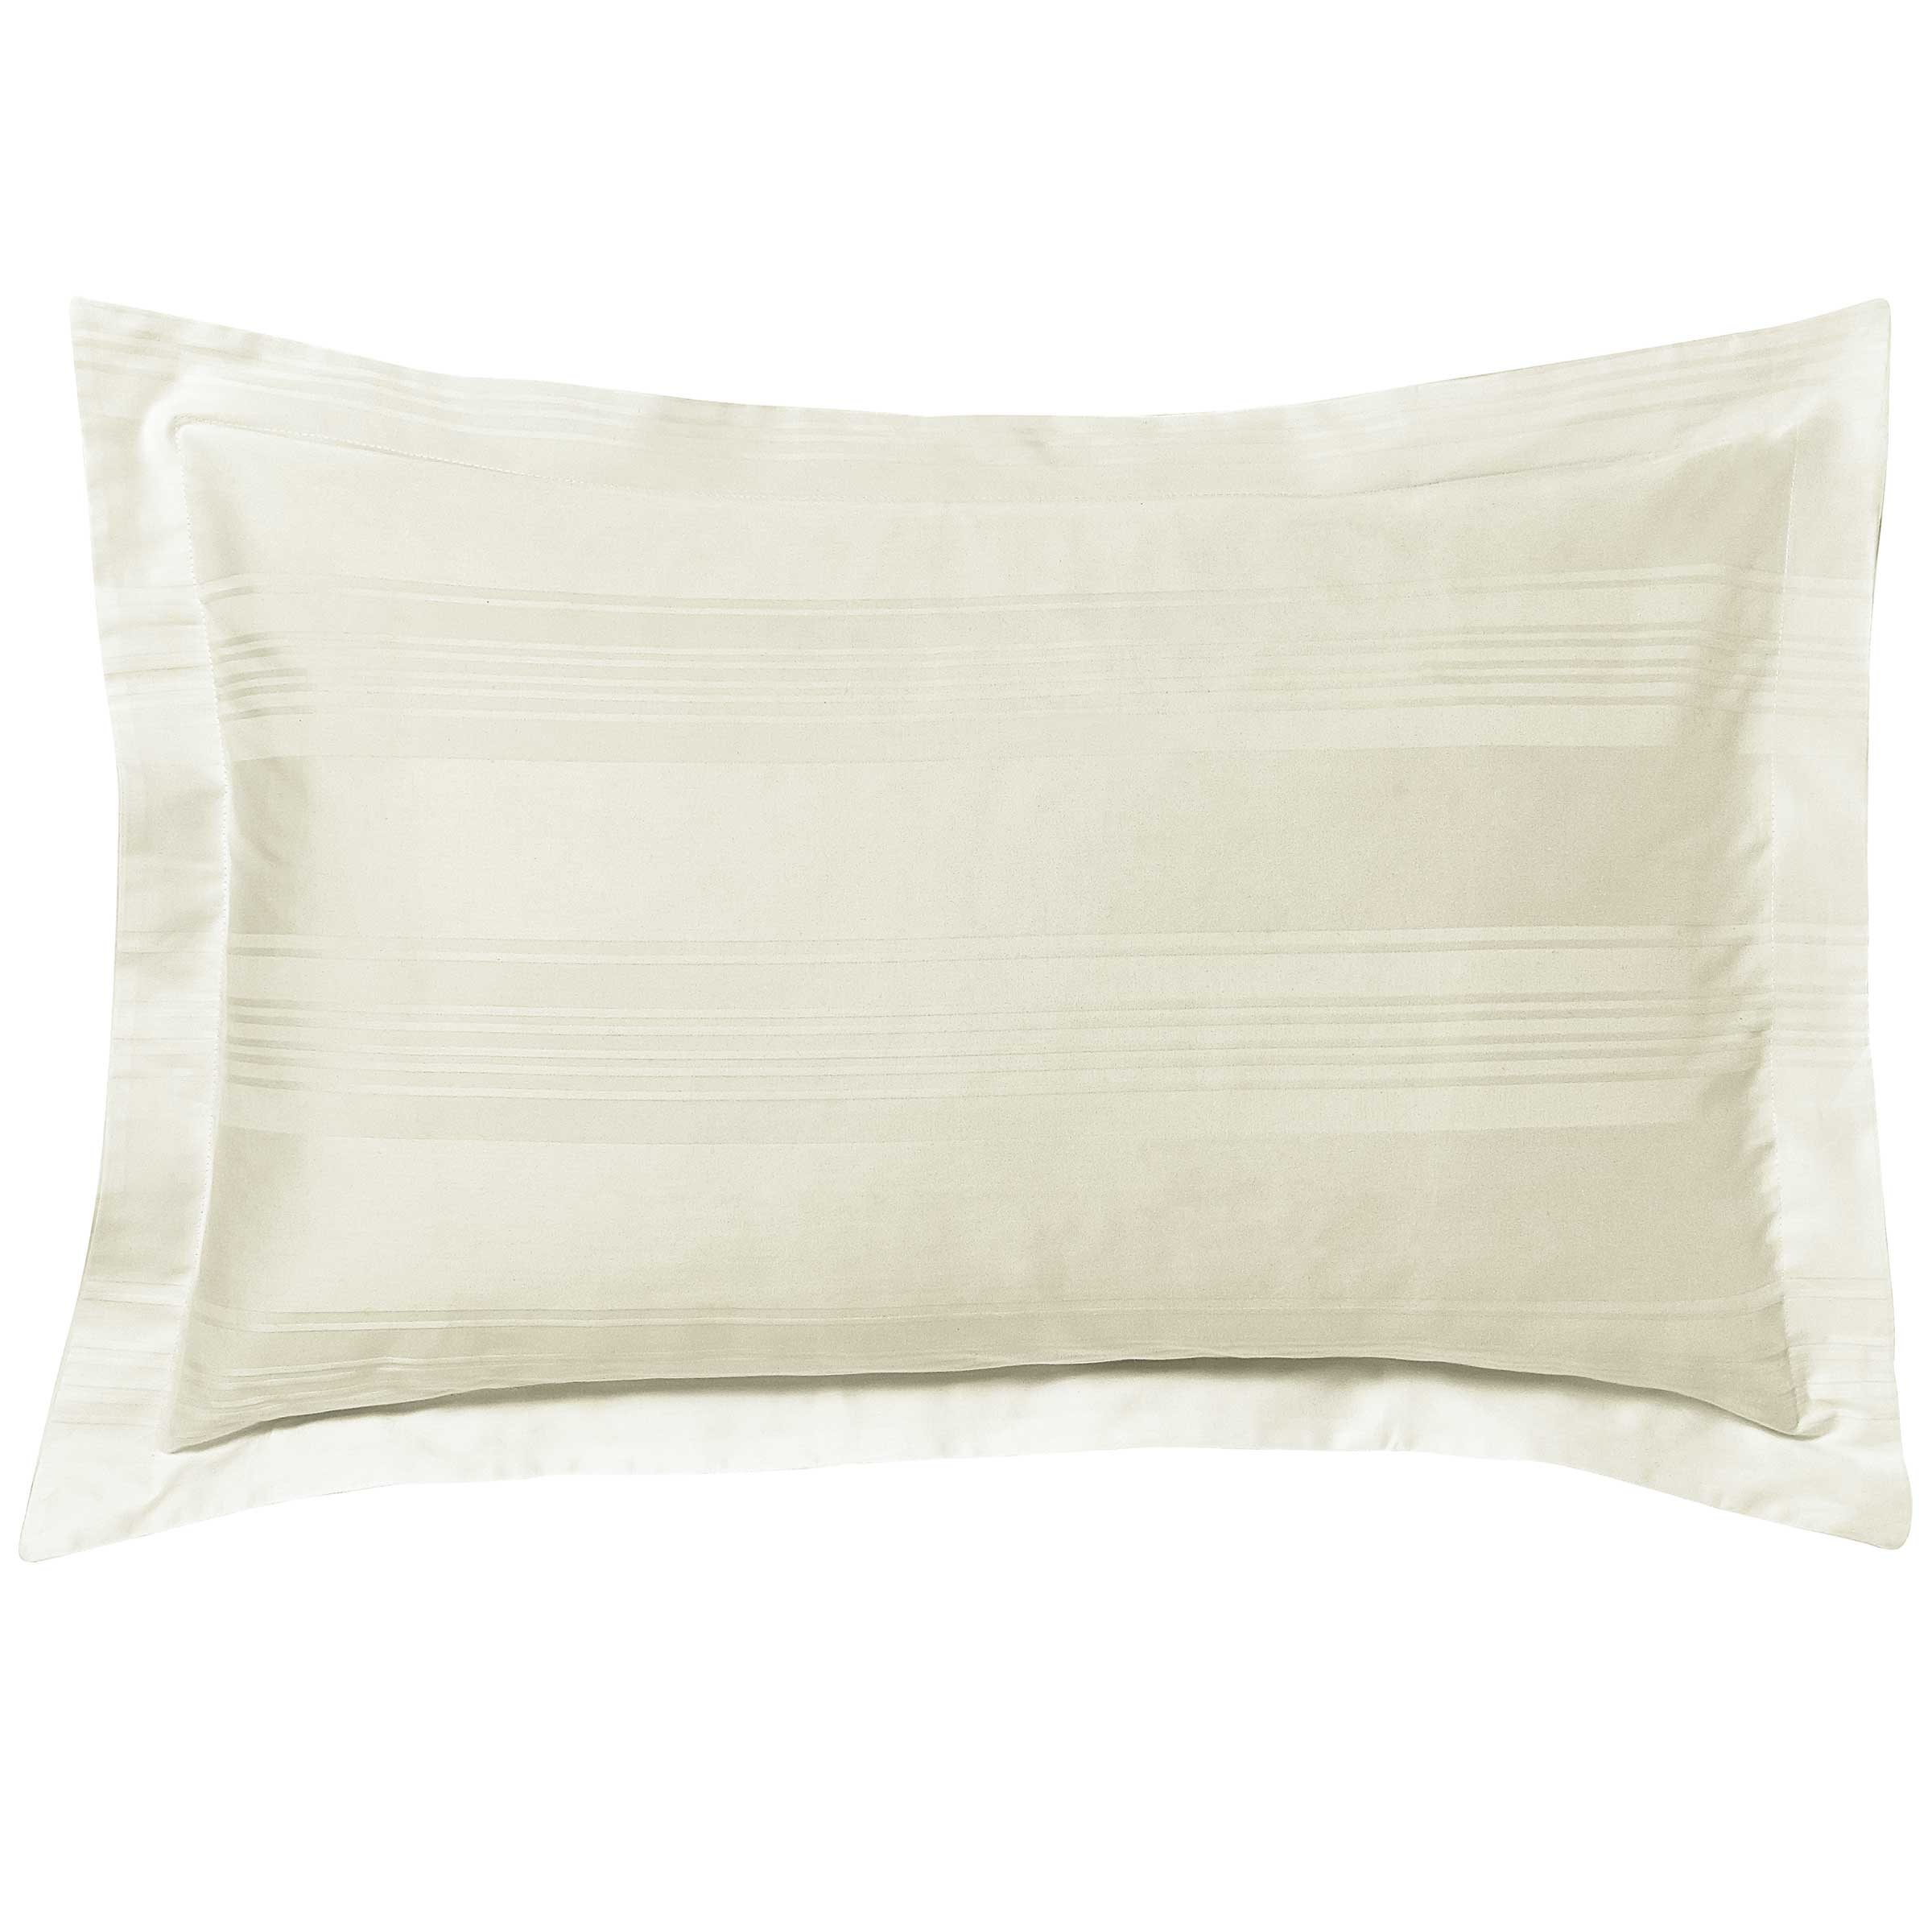 Hotel Bedding Empire Oxford Pillowcase Ivory